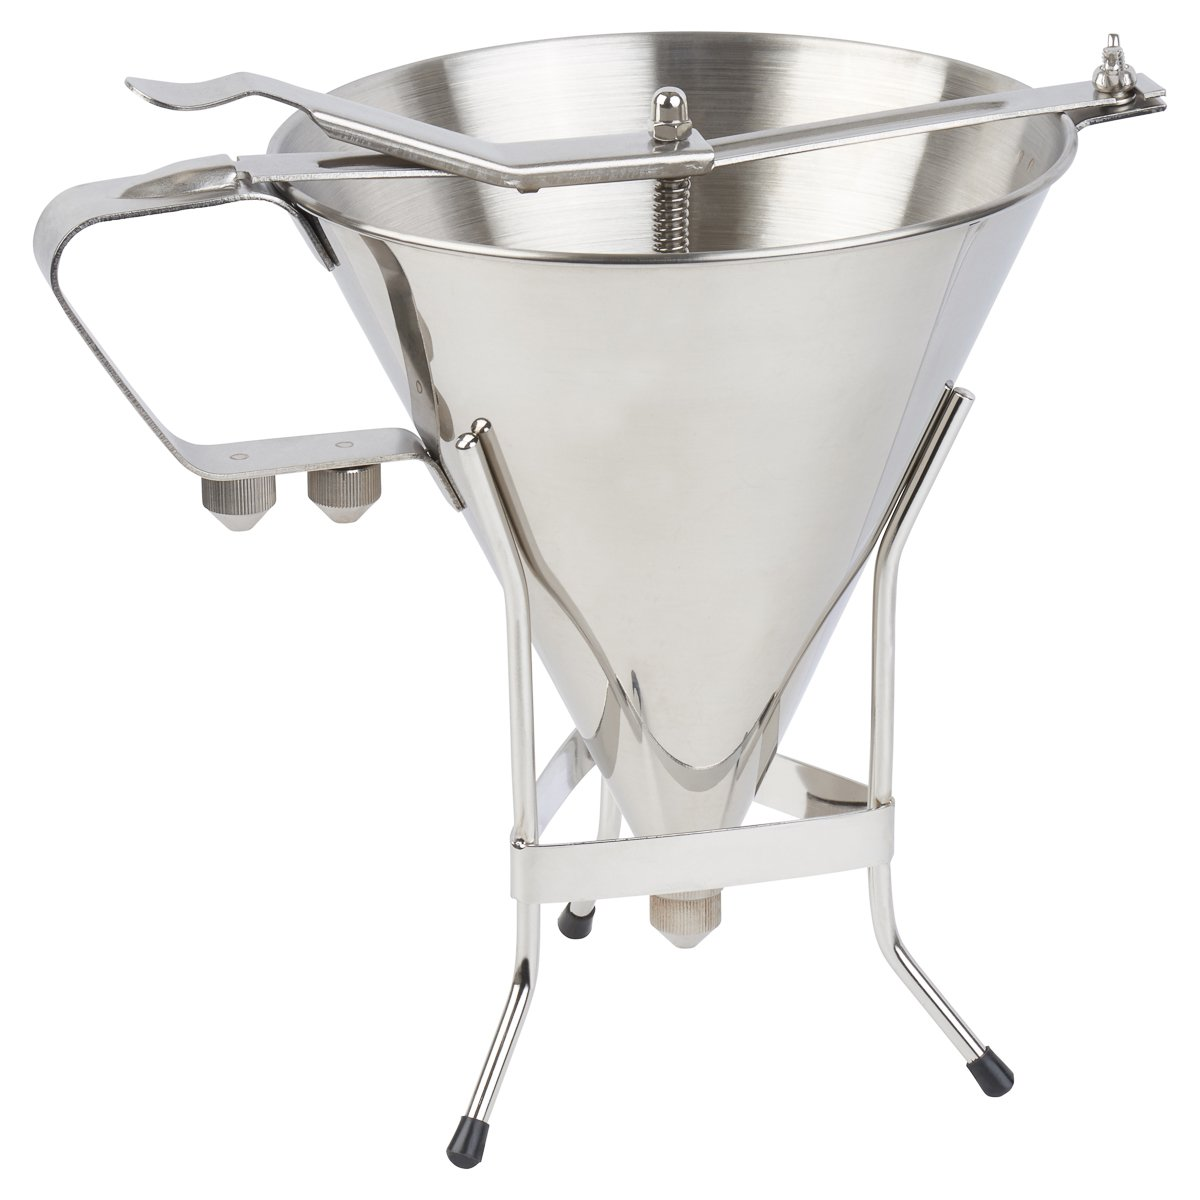 The #1 Professional Confectionery FUNNEL + sturdy STAND with 3 NOZZLES - Premium commercial quality stainless steel - 7-1/2 inch Diameter - Every chef's best friend- By The Kitchen Panda by The Kitchen Panda